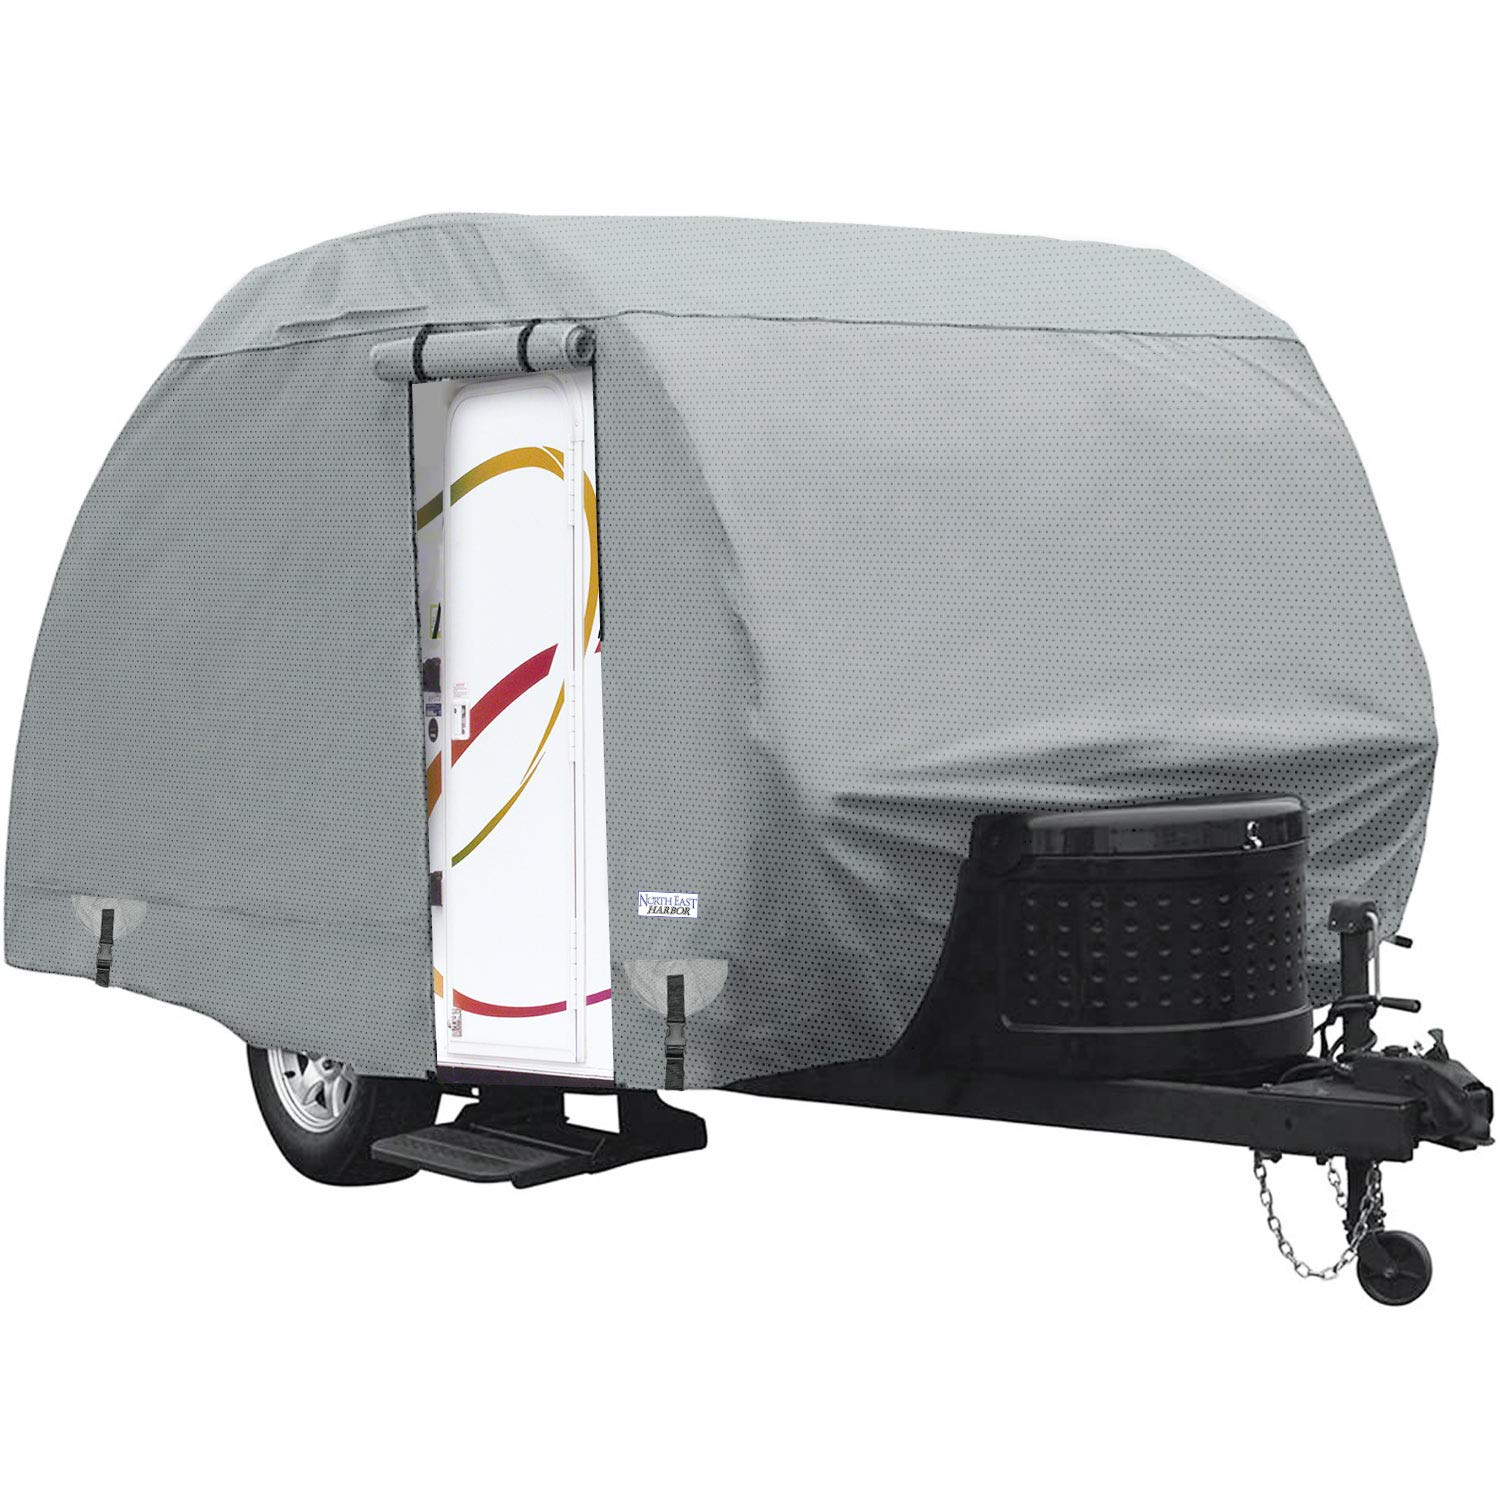 Waterproof Superior Teardrop R-Pod Travel Trailer Storage Cover Fits Up To 20' Long and 6' Wide Trailers - Direct Fitment for Forest River R-Pod Model RP-178, RP-181G, and RP-182G by North East Harbor